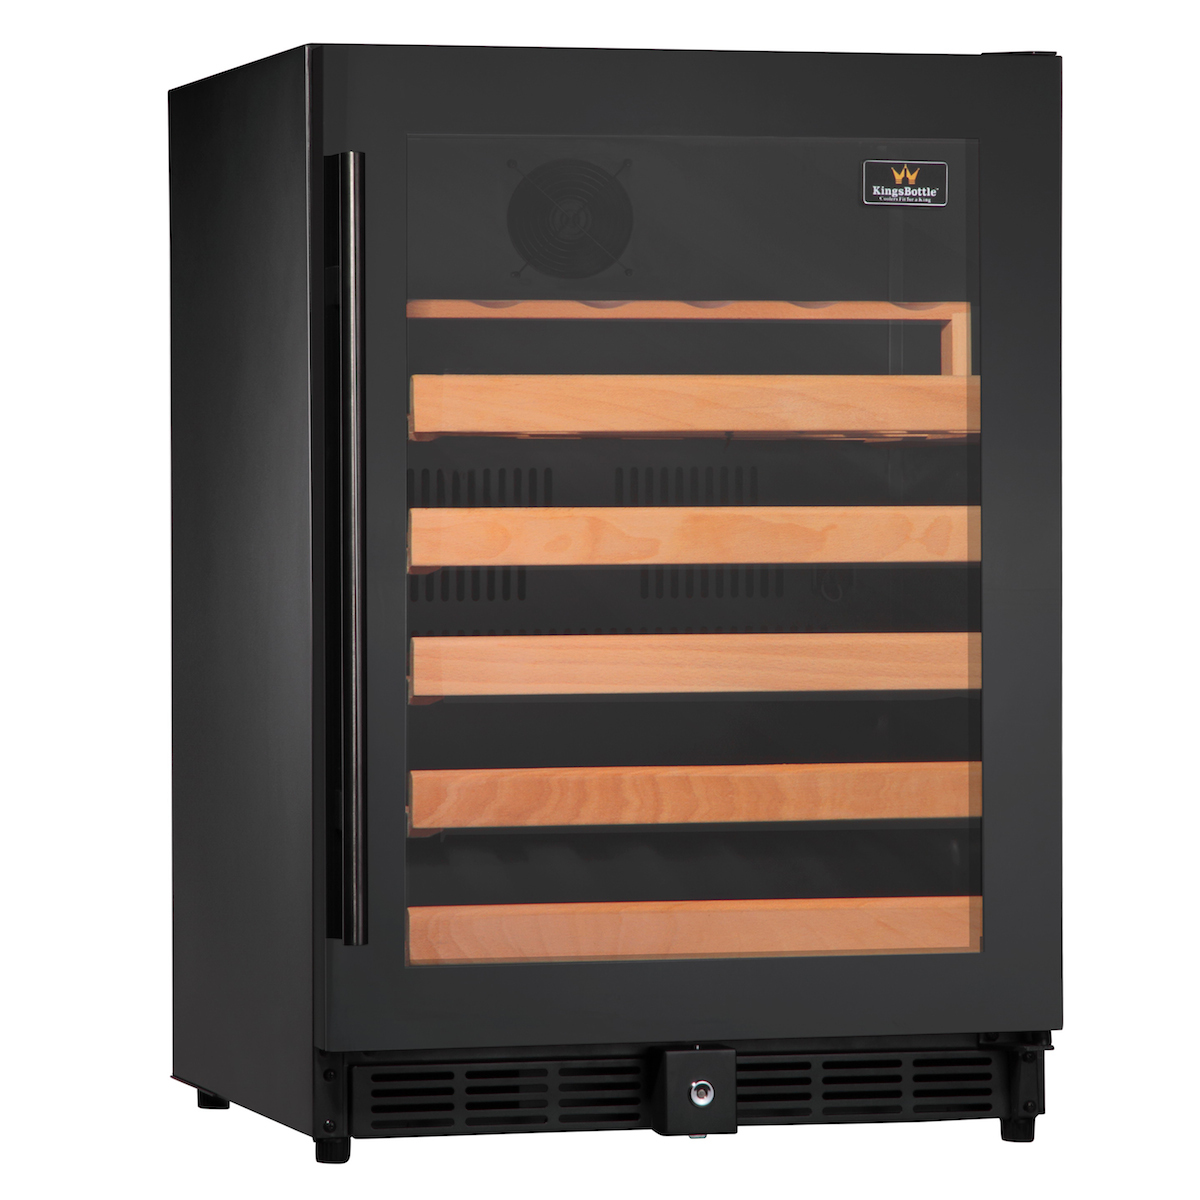 Kingsbottle 50 Bottle Single Zone Built-In Wine Refrigerator